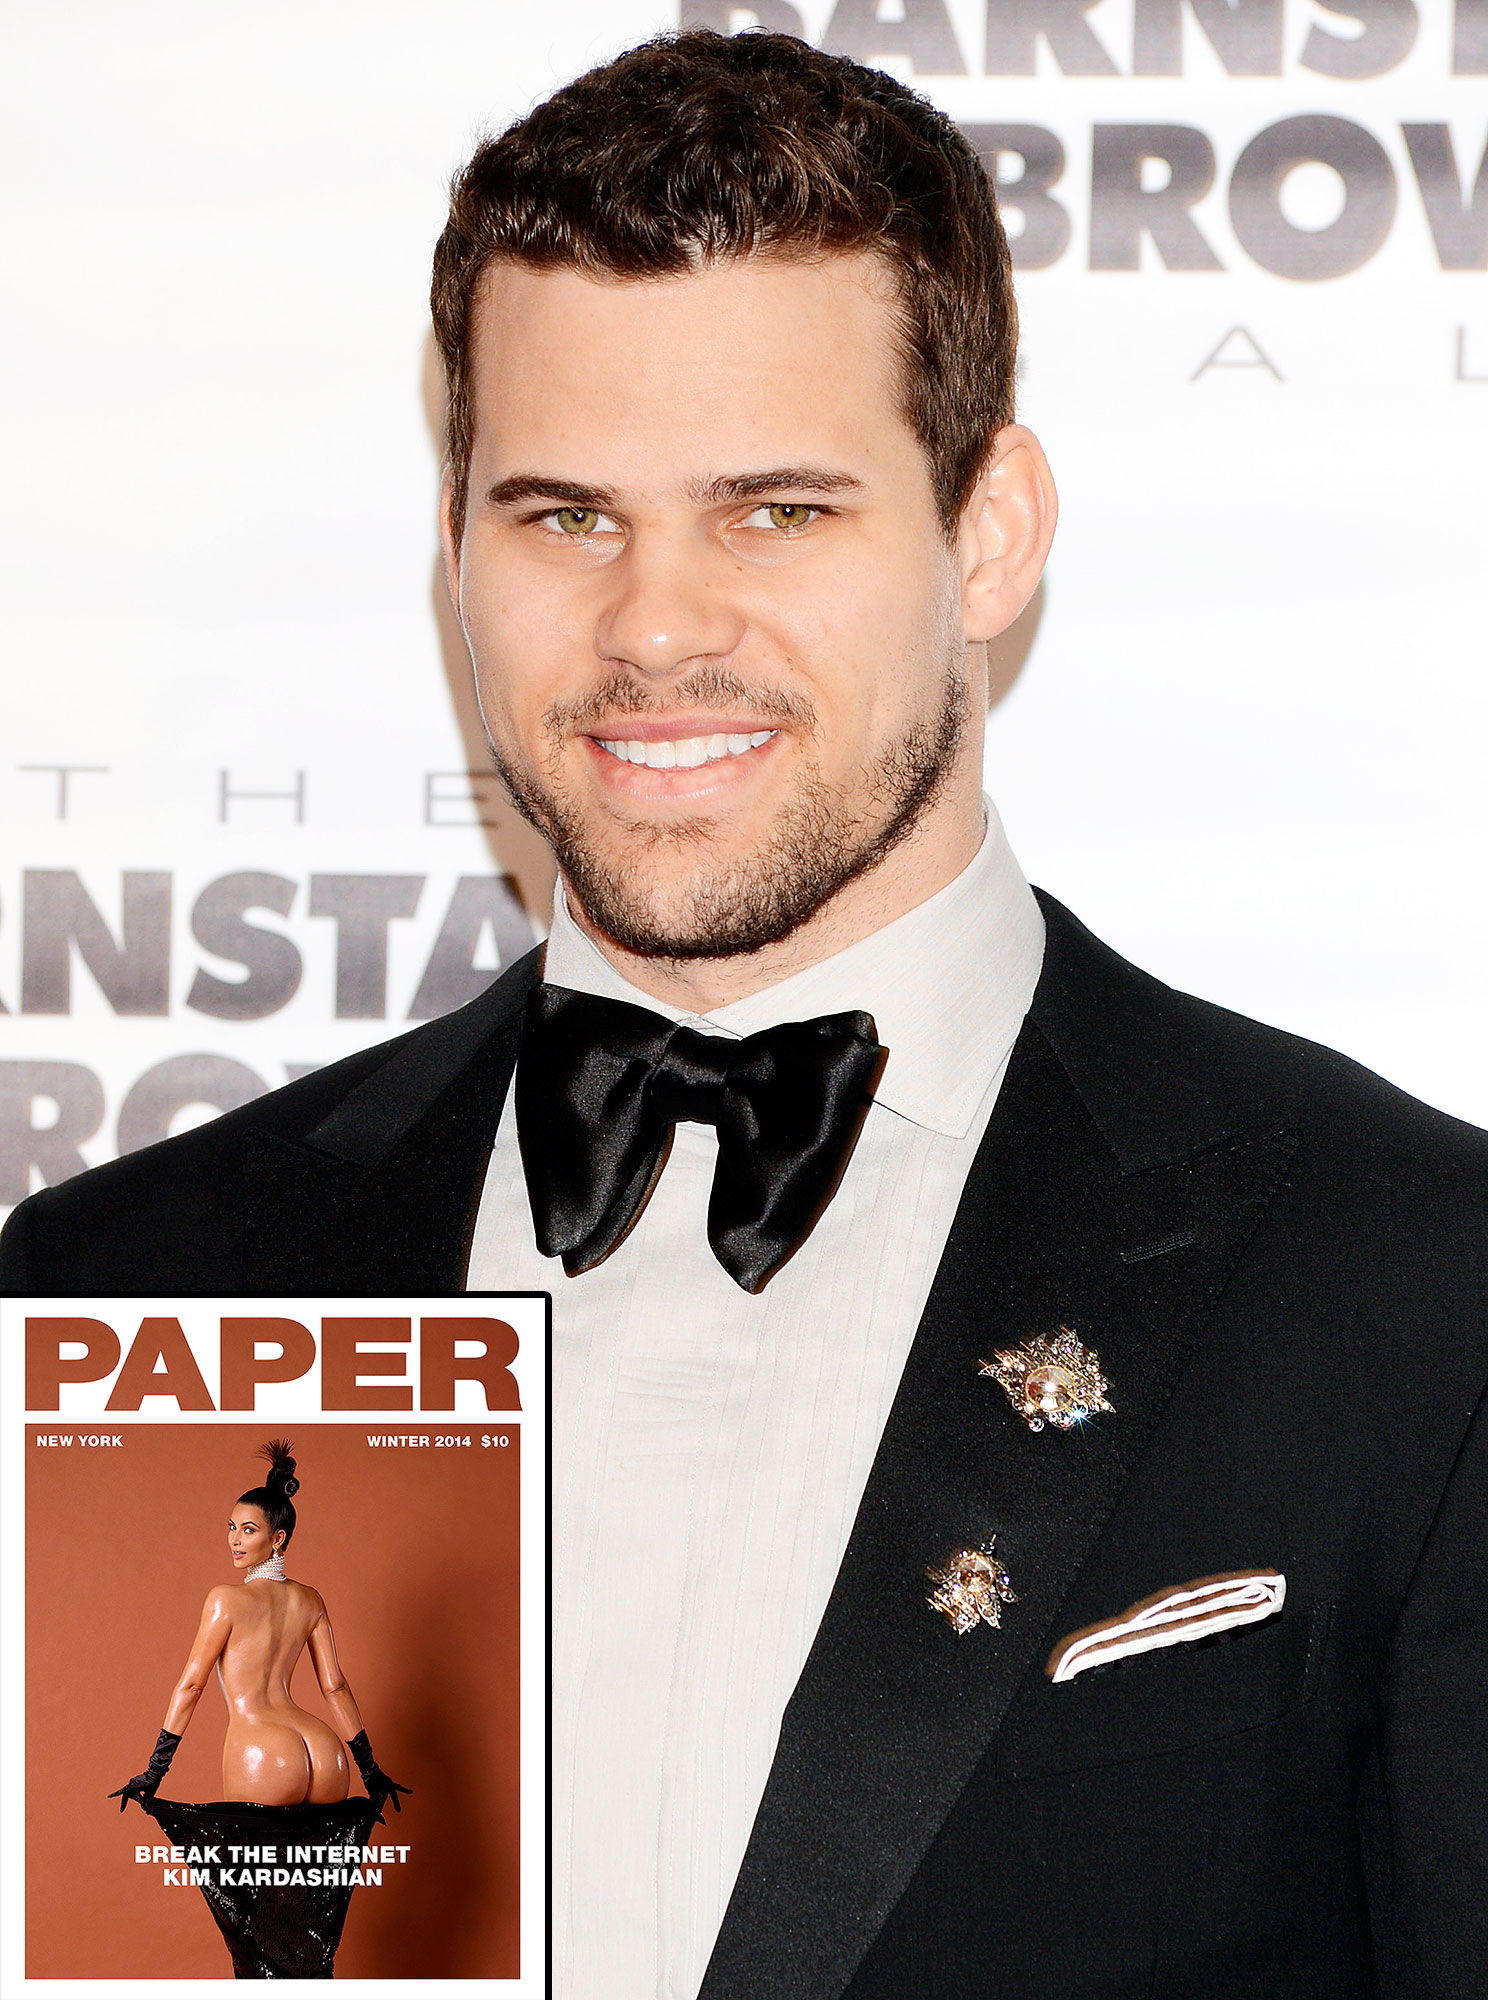 "Kris Humphries Kim Kardashian Split Quotes - Kardashian's highly publicized November 2014 Paper magazine cover did not catch her ex-husband's attention. ""A lot of times I don't even know what's going on,"" he told Washington radio station 106.7 when pressed about the spread."